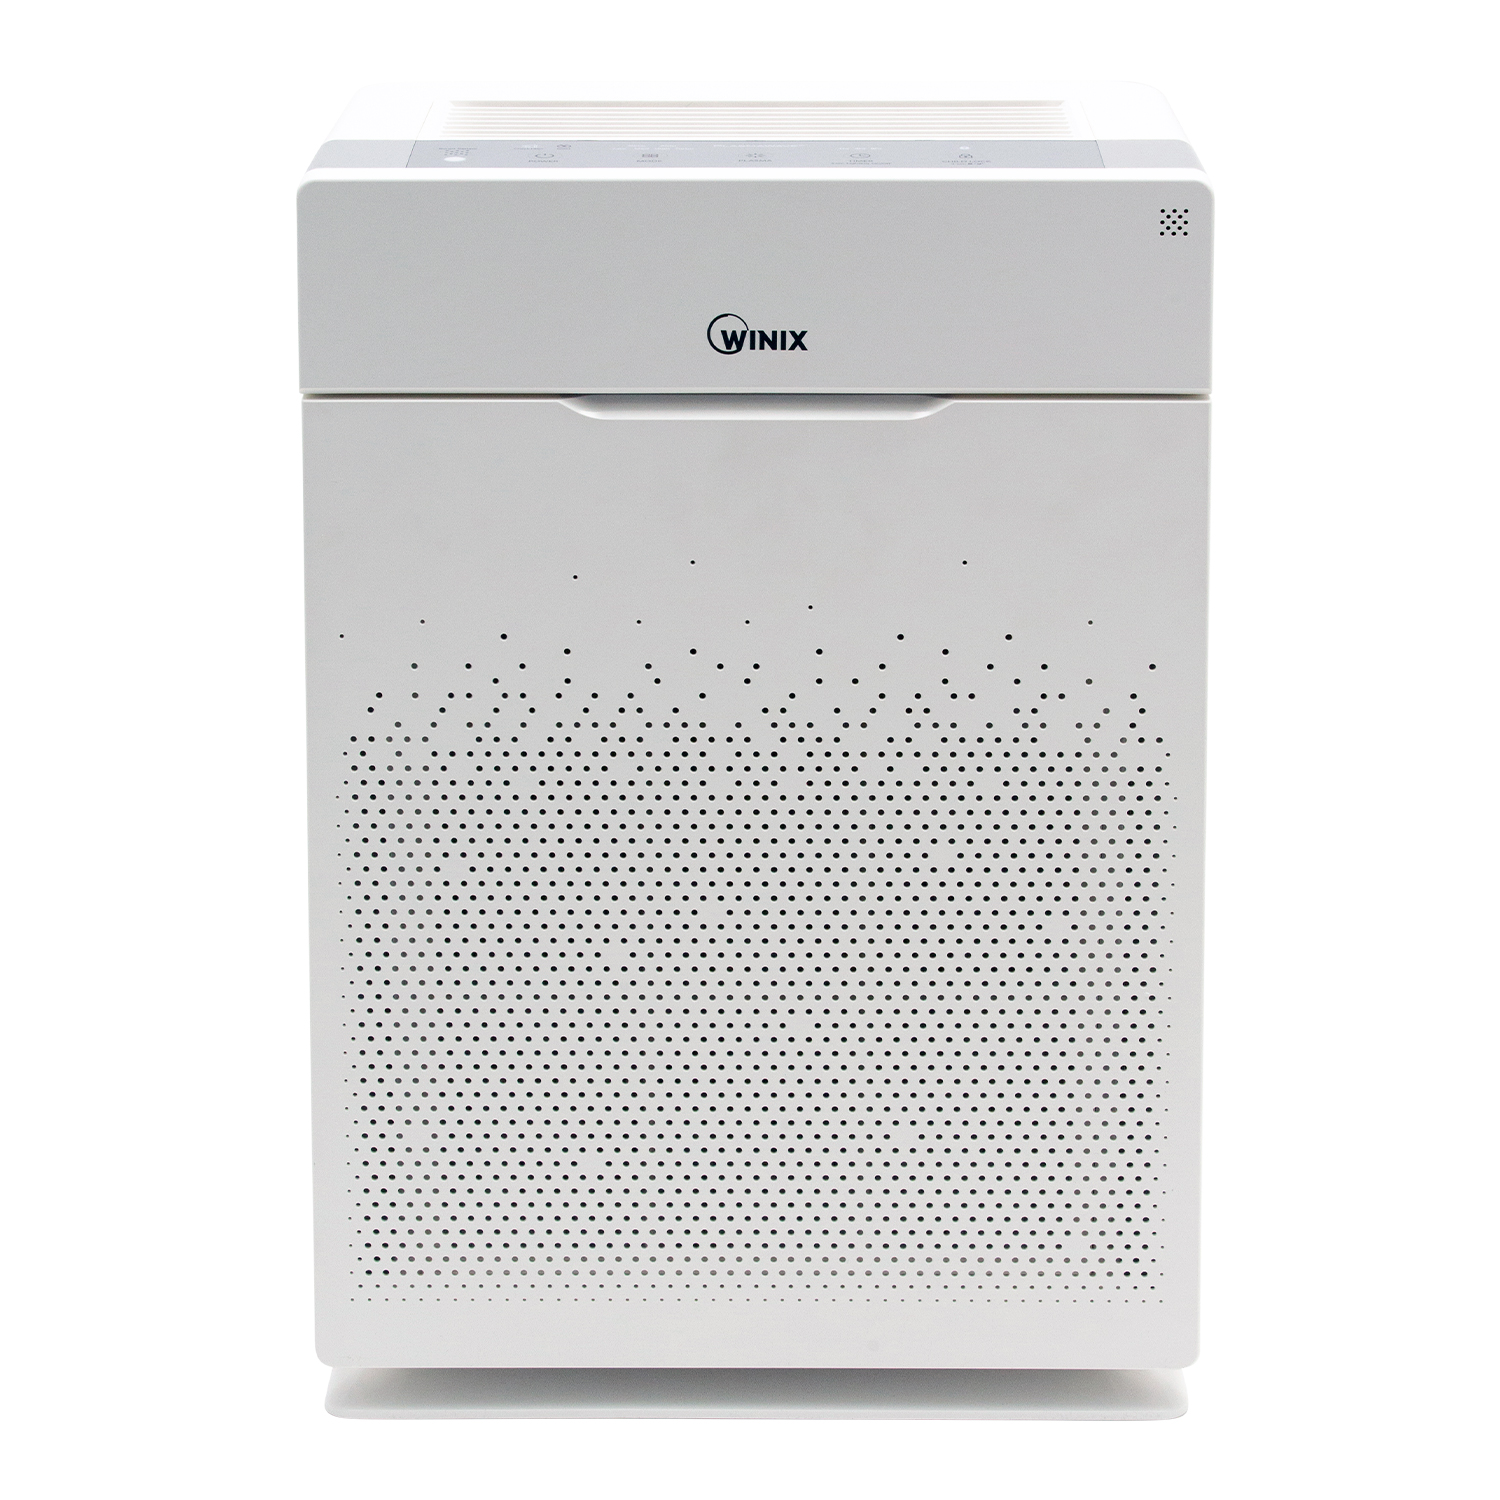 Winix HR900 Ultimate Pet True HEPA Air Purifier with PlasmaWave® Technology, 300 sq ft Room Capacity, White